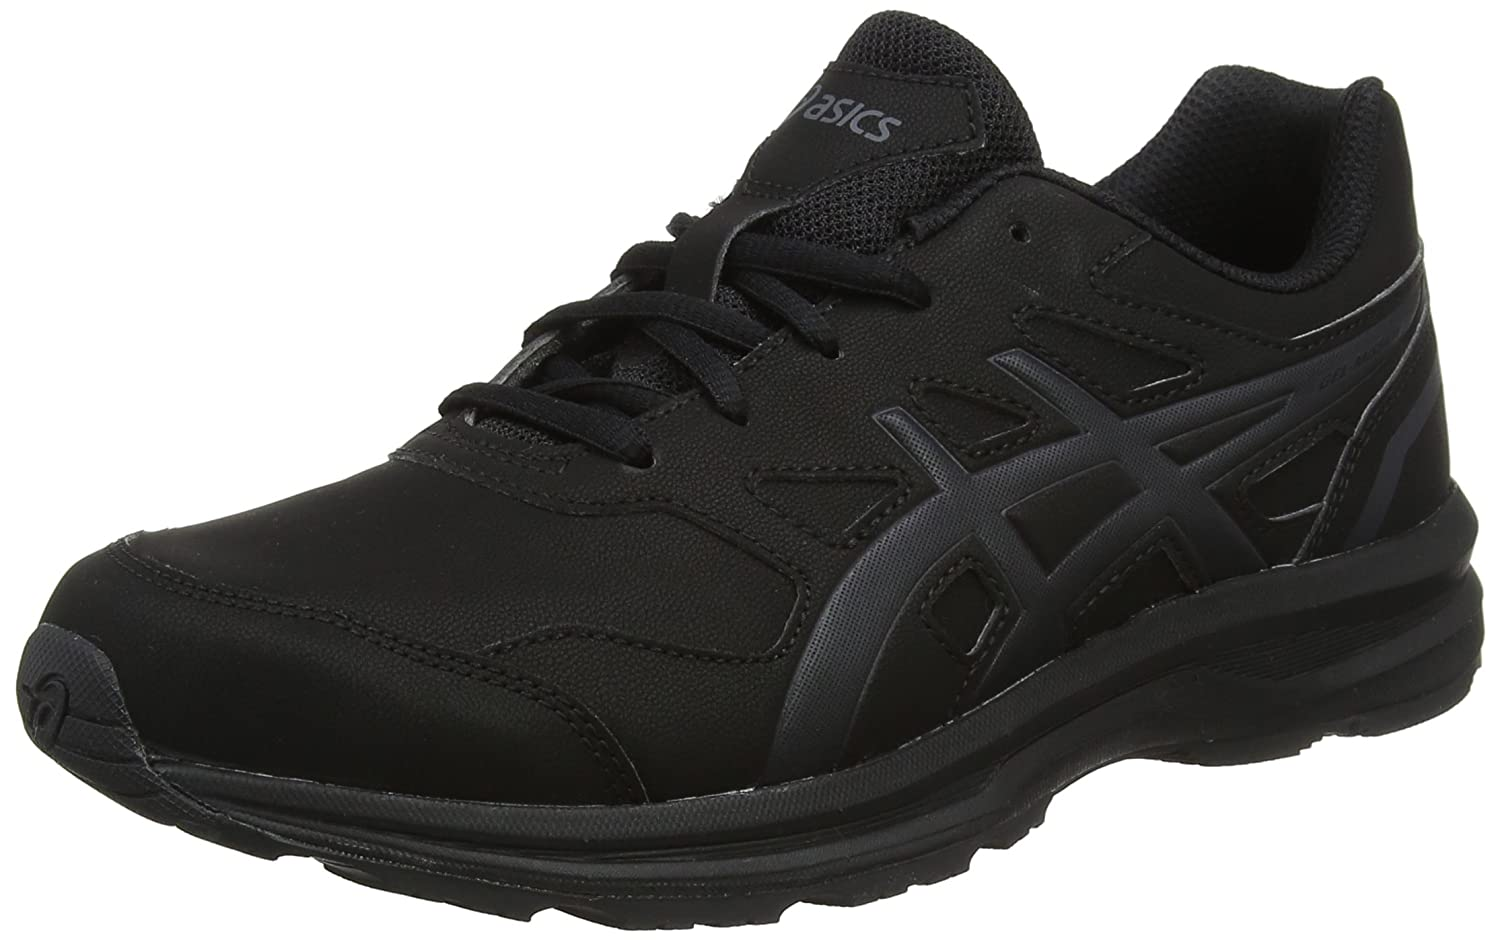 ASICS Herren Gel-Mission 3 Walkingschuhe Q801Y